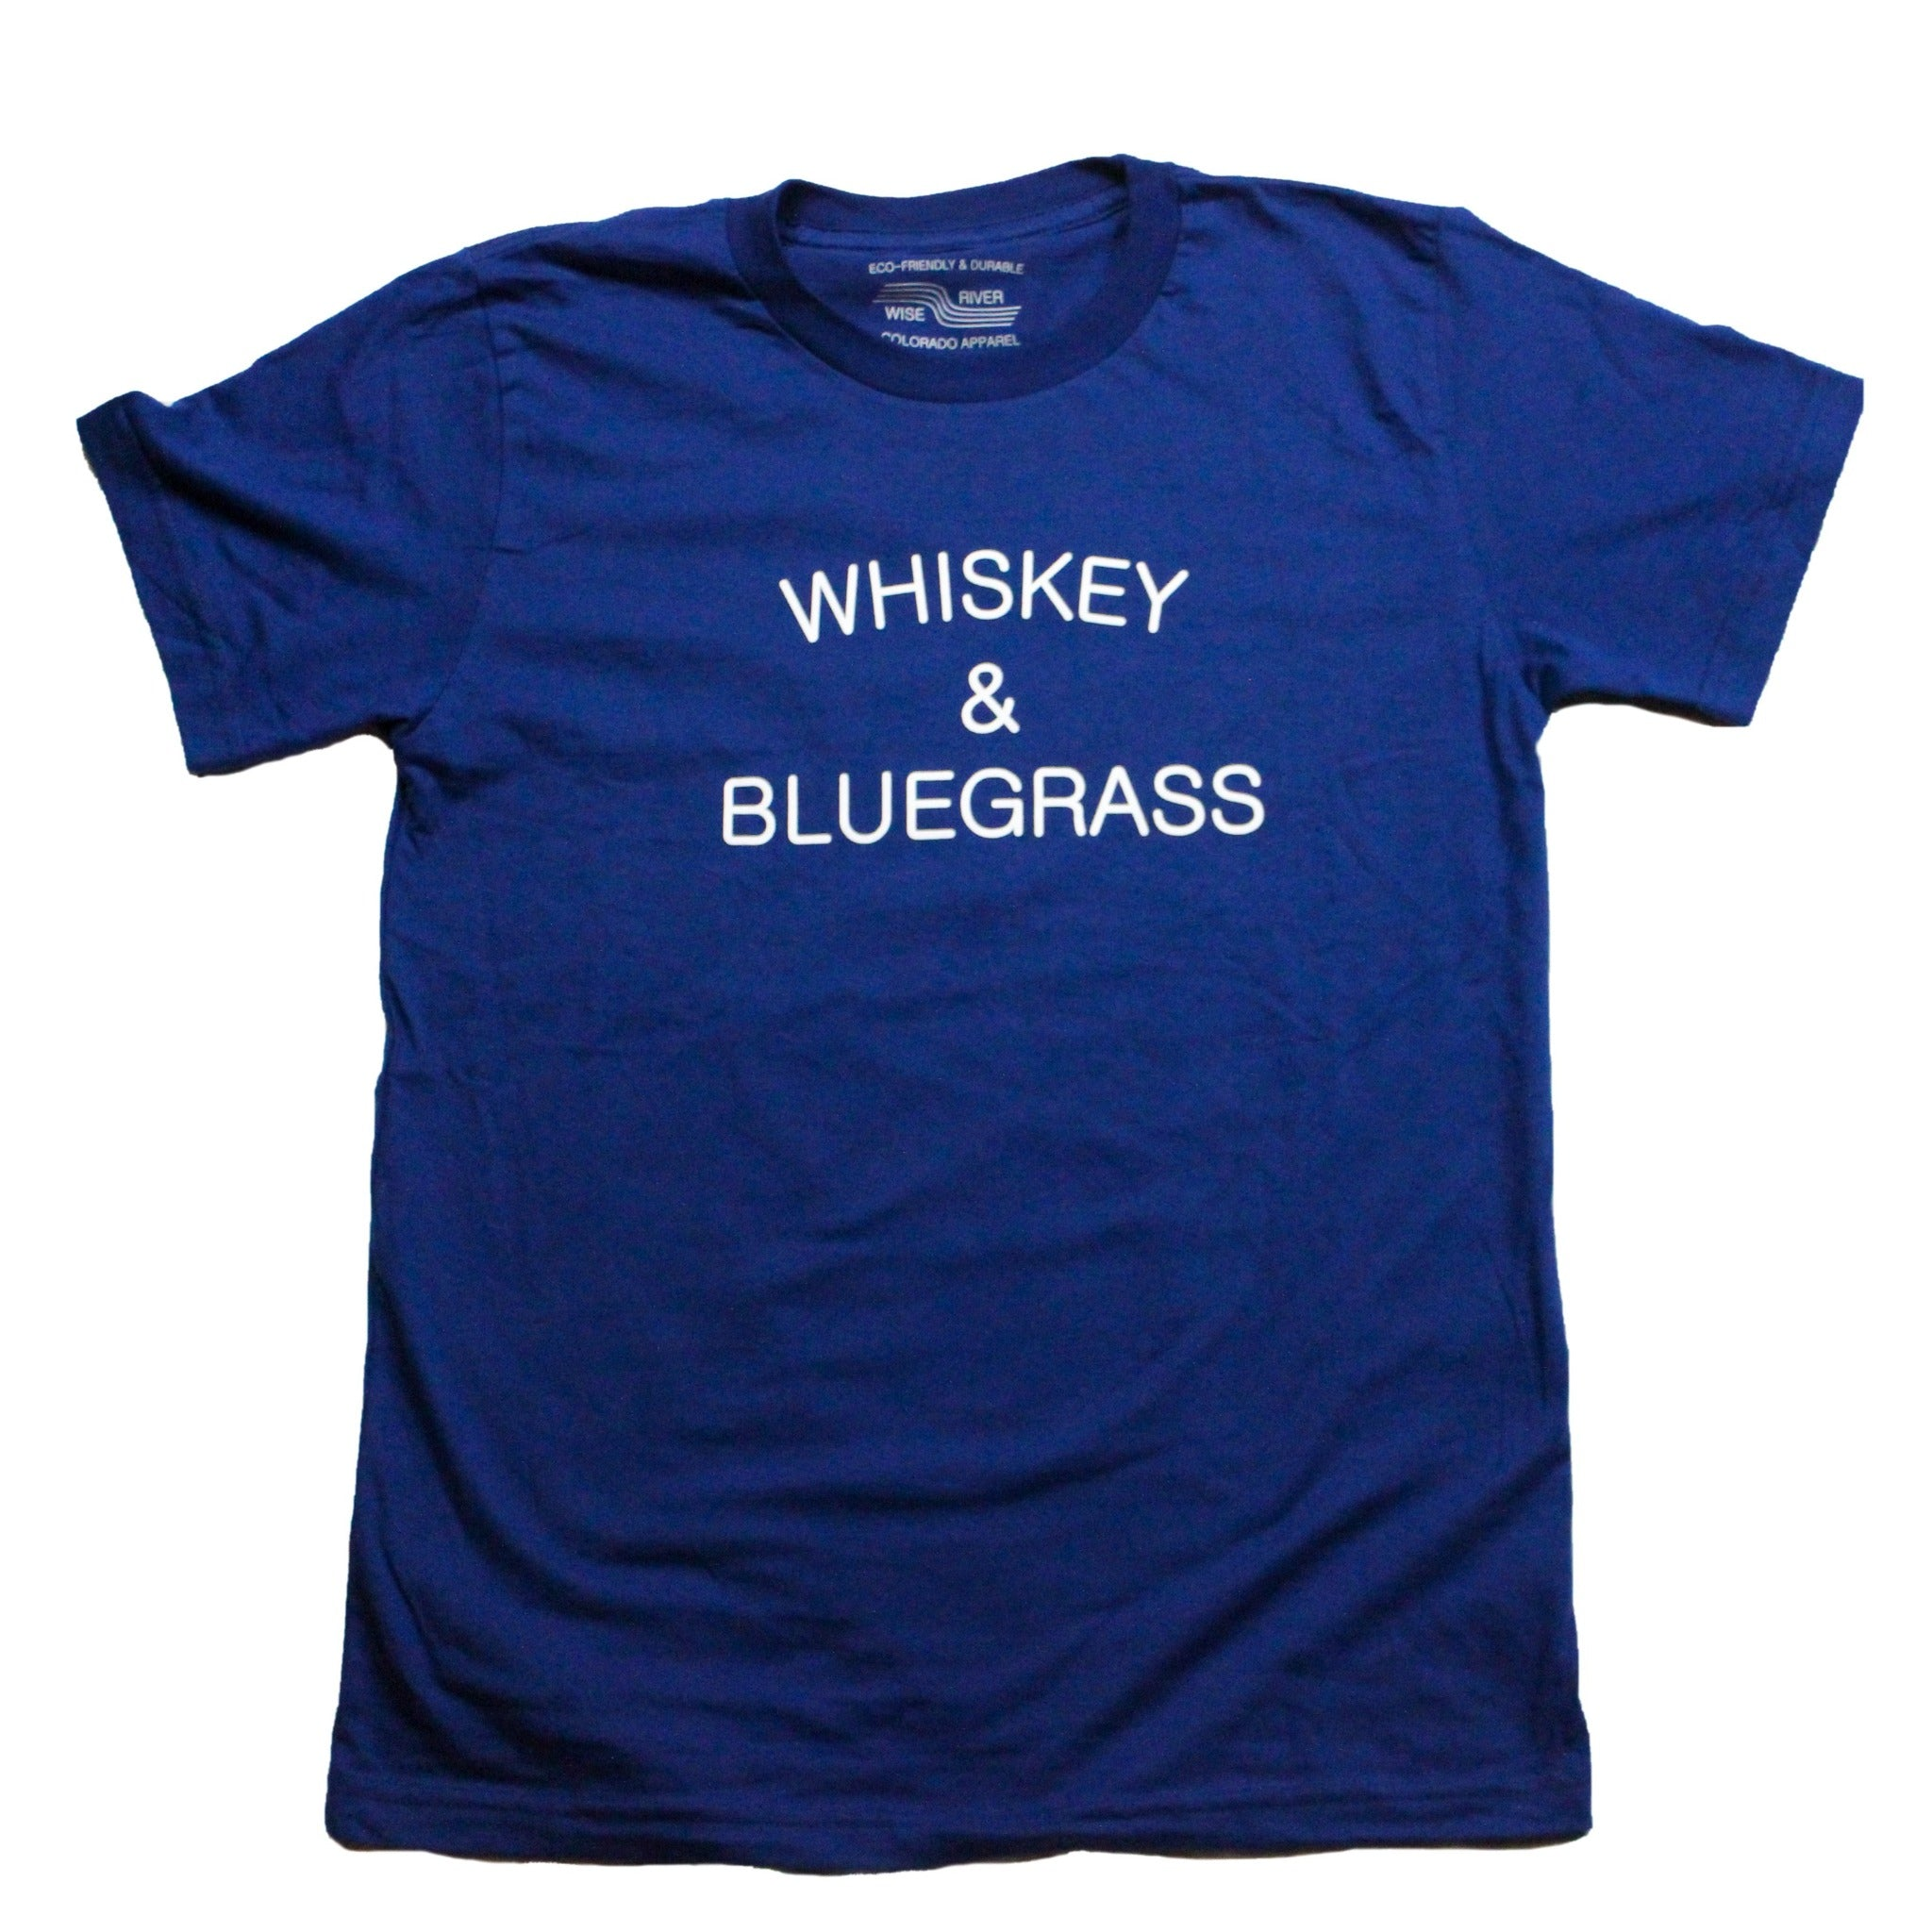 Whiskeygrass Tee